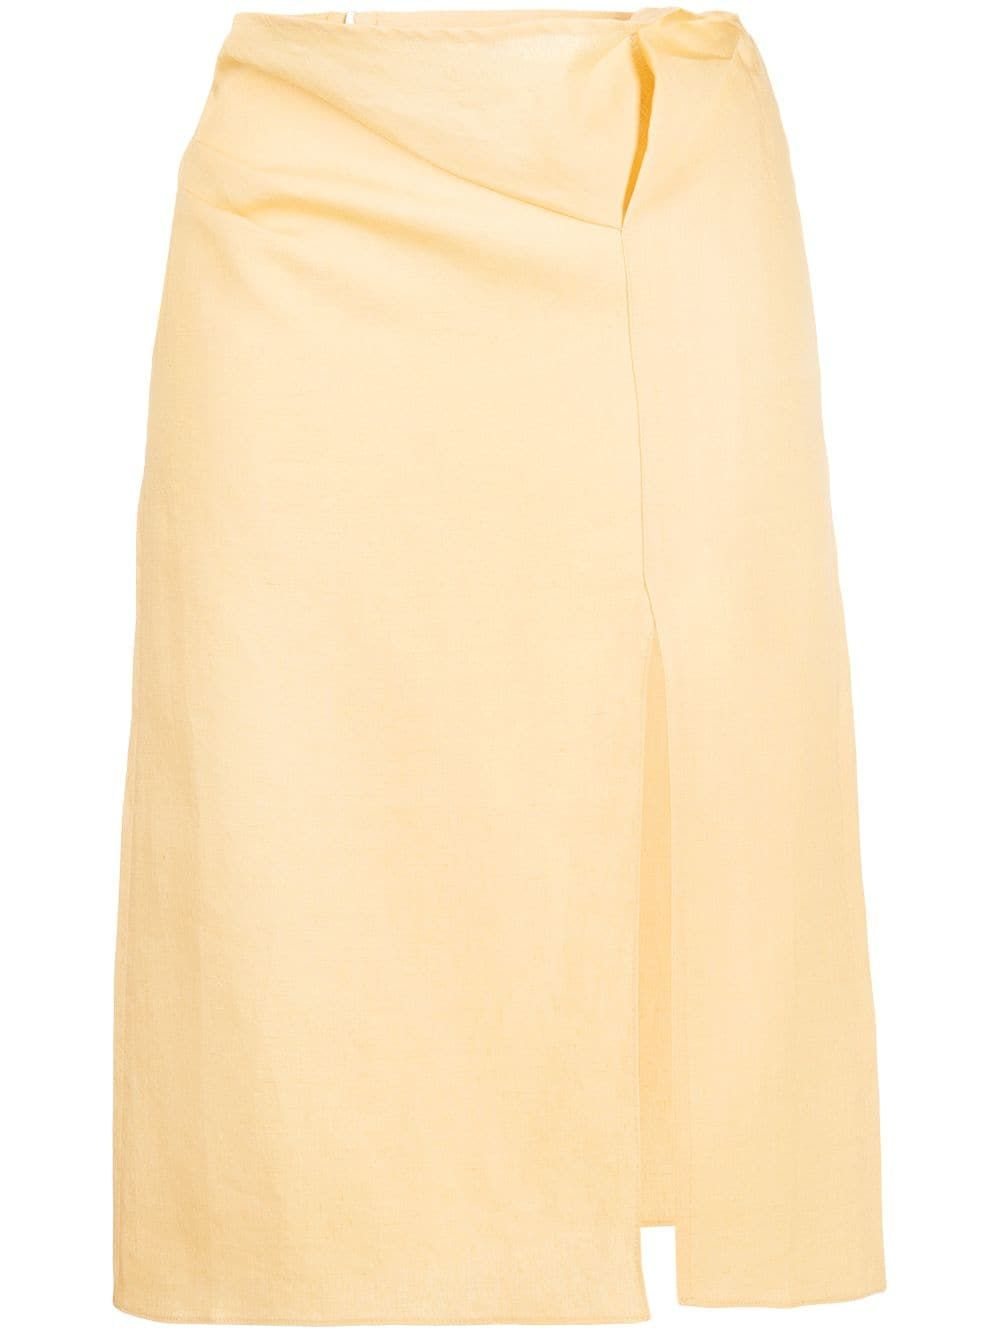 Jacquemus JACQUEMUS WOMEN'S YELLOW LINEN SKIRT